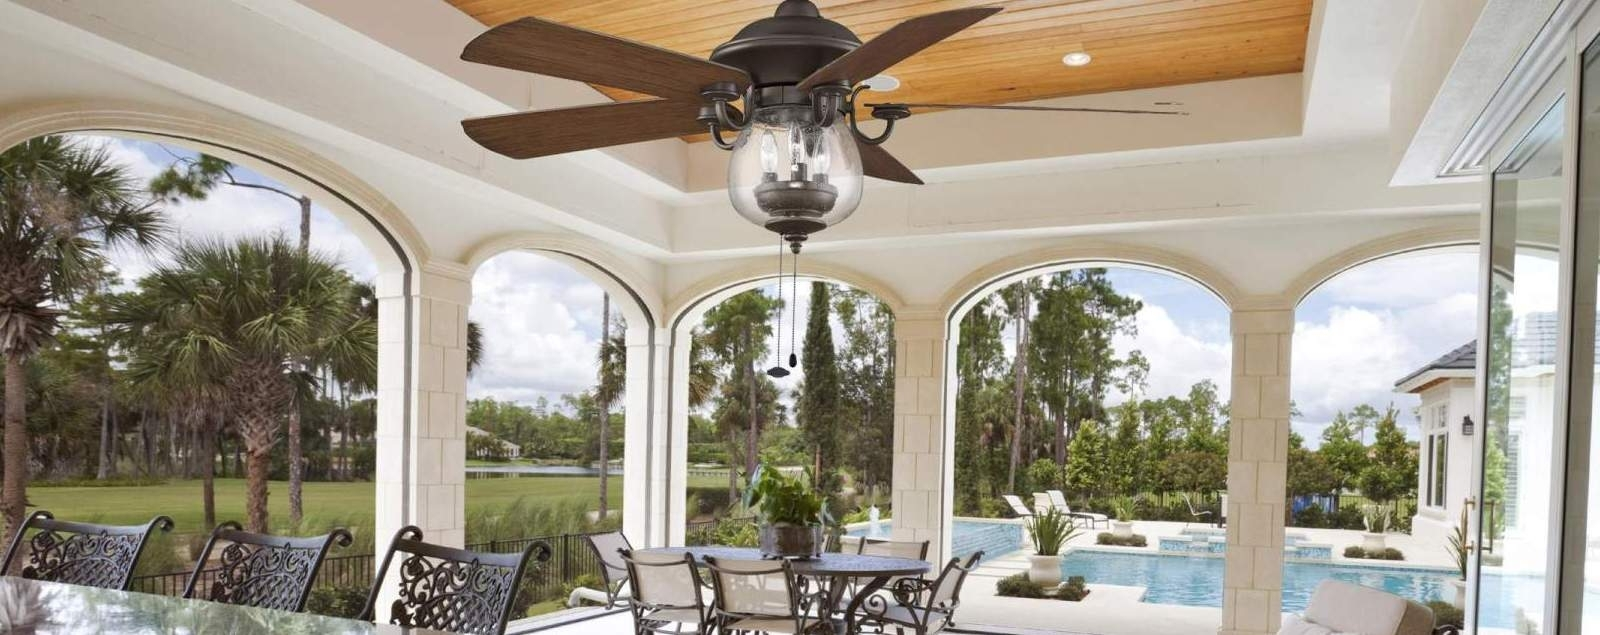 2018 Quality Outdoor Ceiling Fans For Outdoor Ceiling Fans – Shop Wet, Dry, And Damp Rated Outdoor Fans (View 1 of 20)